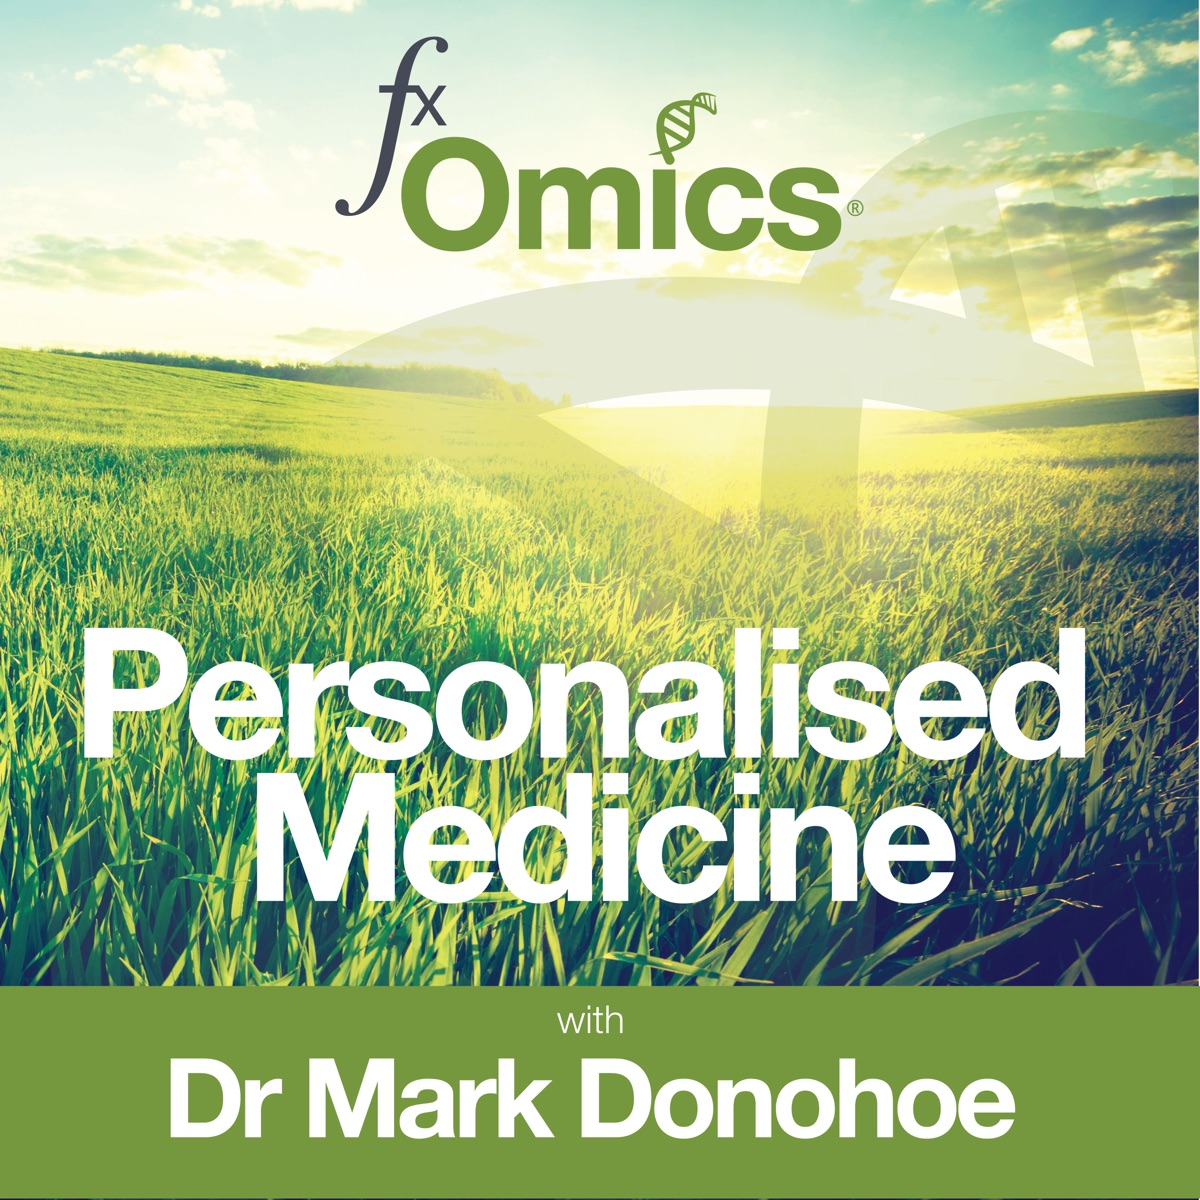 The Evolution of Functional Medicine with James Maskell